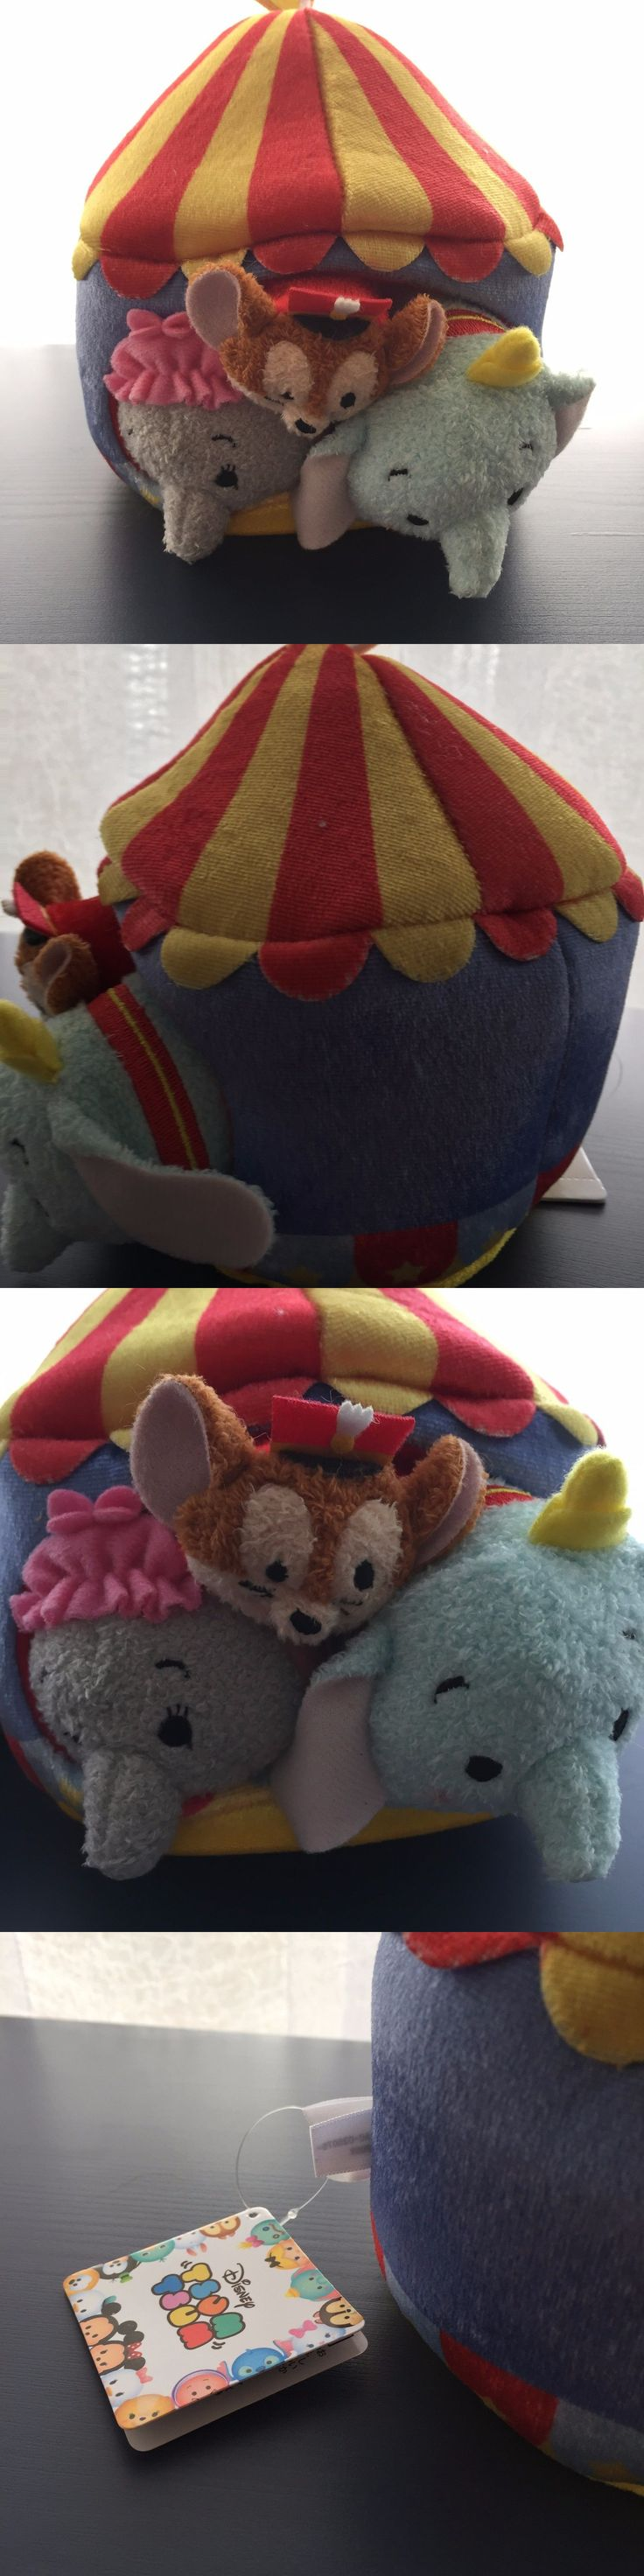 collectibles: Disney Japan Tsum Tsum Dumbo Circus Set Of 3 New Tags -> BUY IT NOW ONLY: $43.5 on eBay!